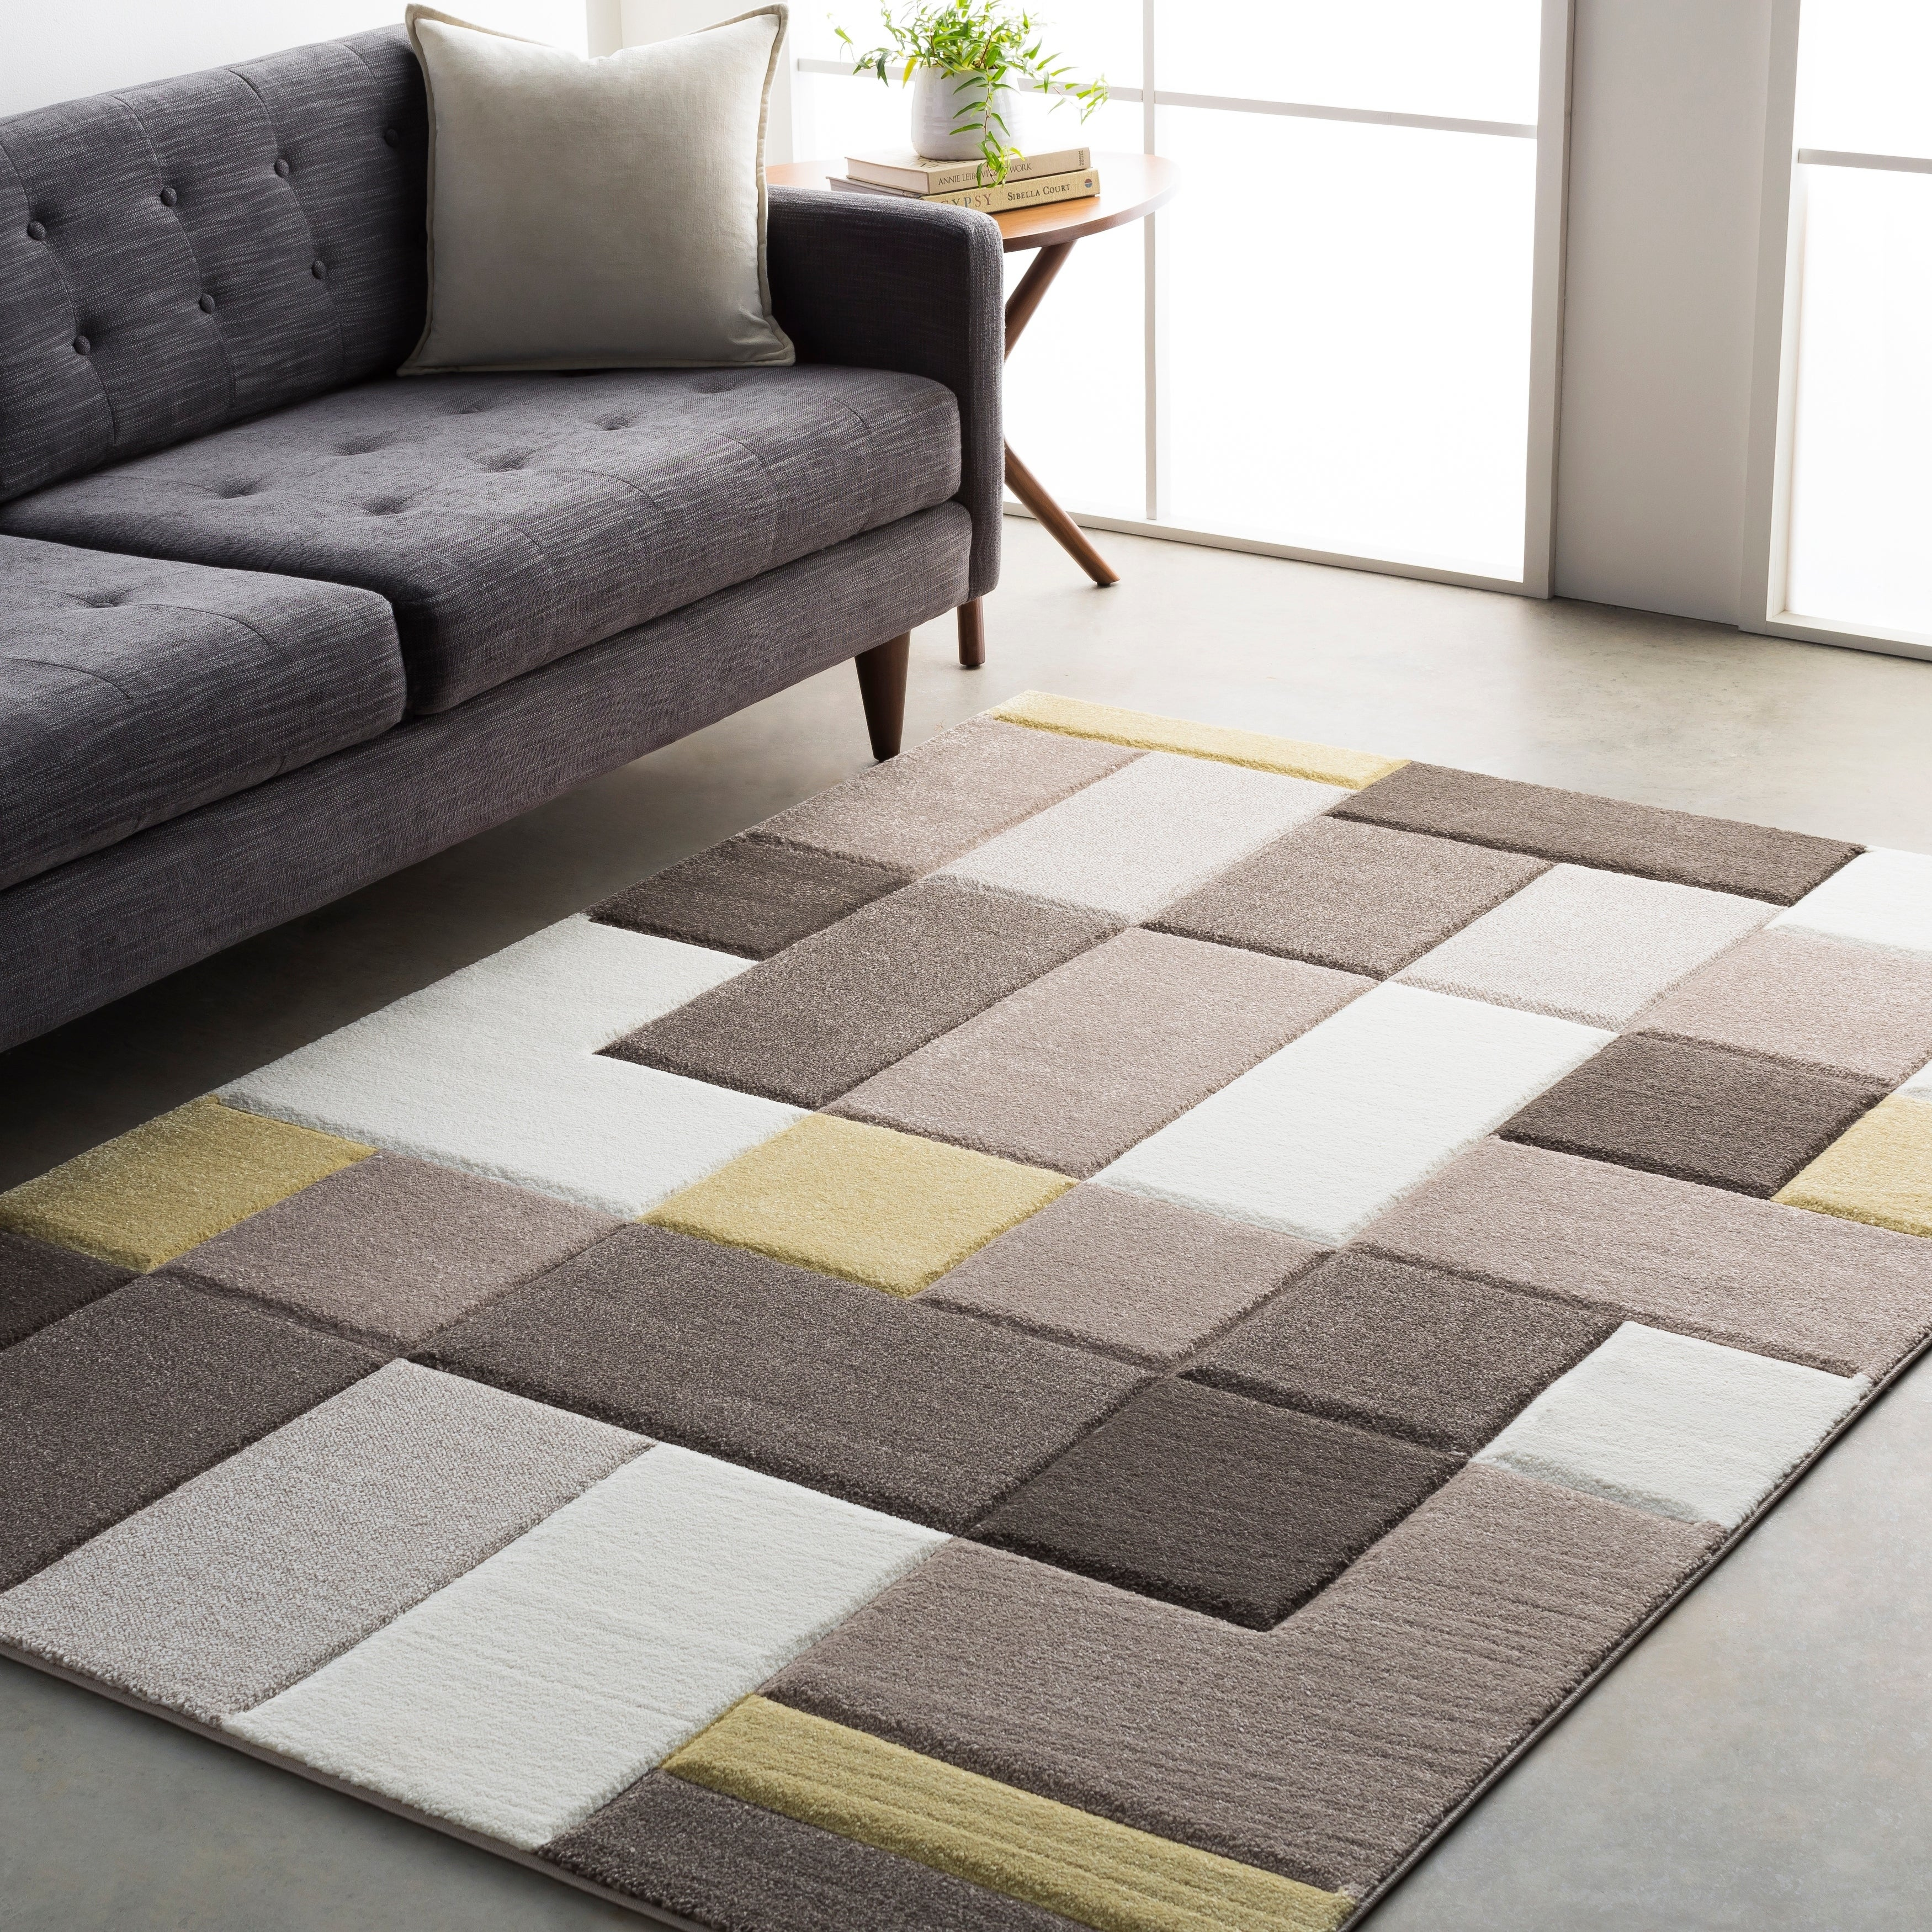 Modern Geometric Carved Grey And Yellow Area Rug 5 3 X 7 6 Overstock 15924680